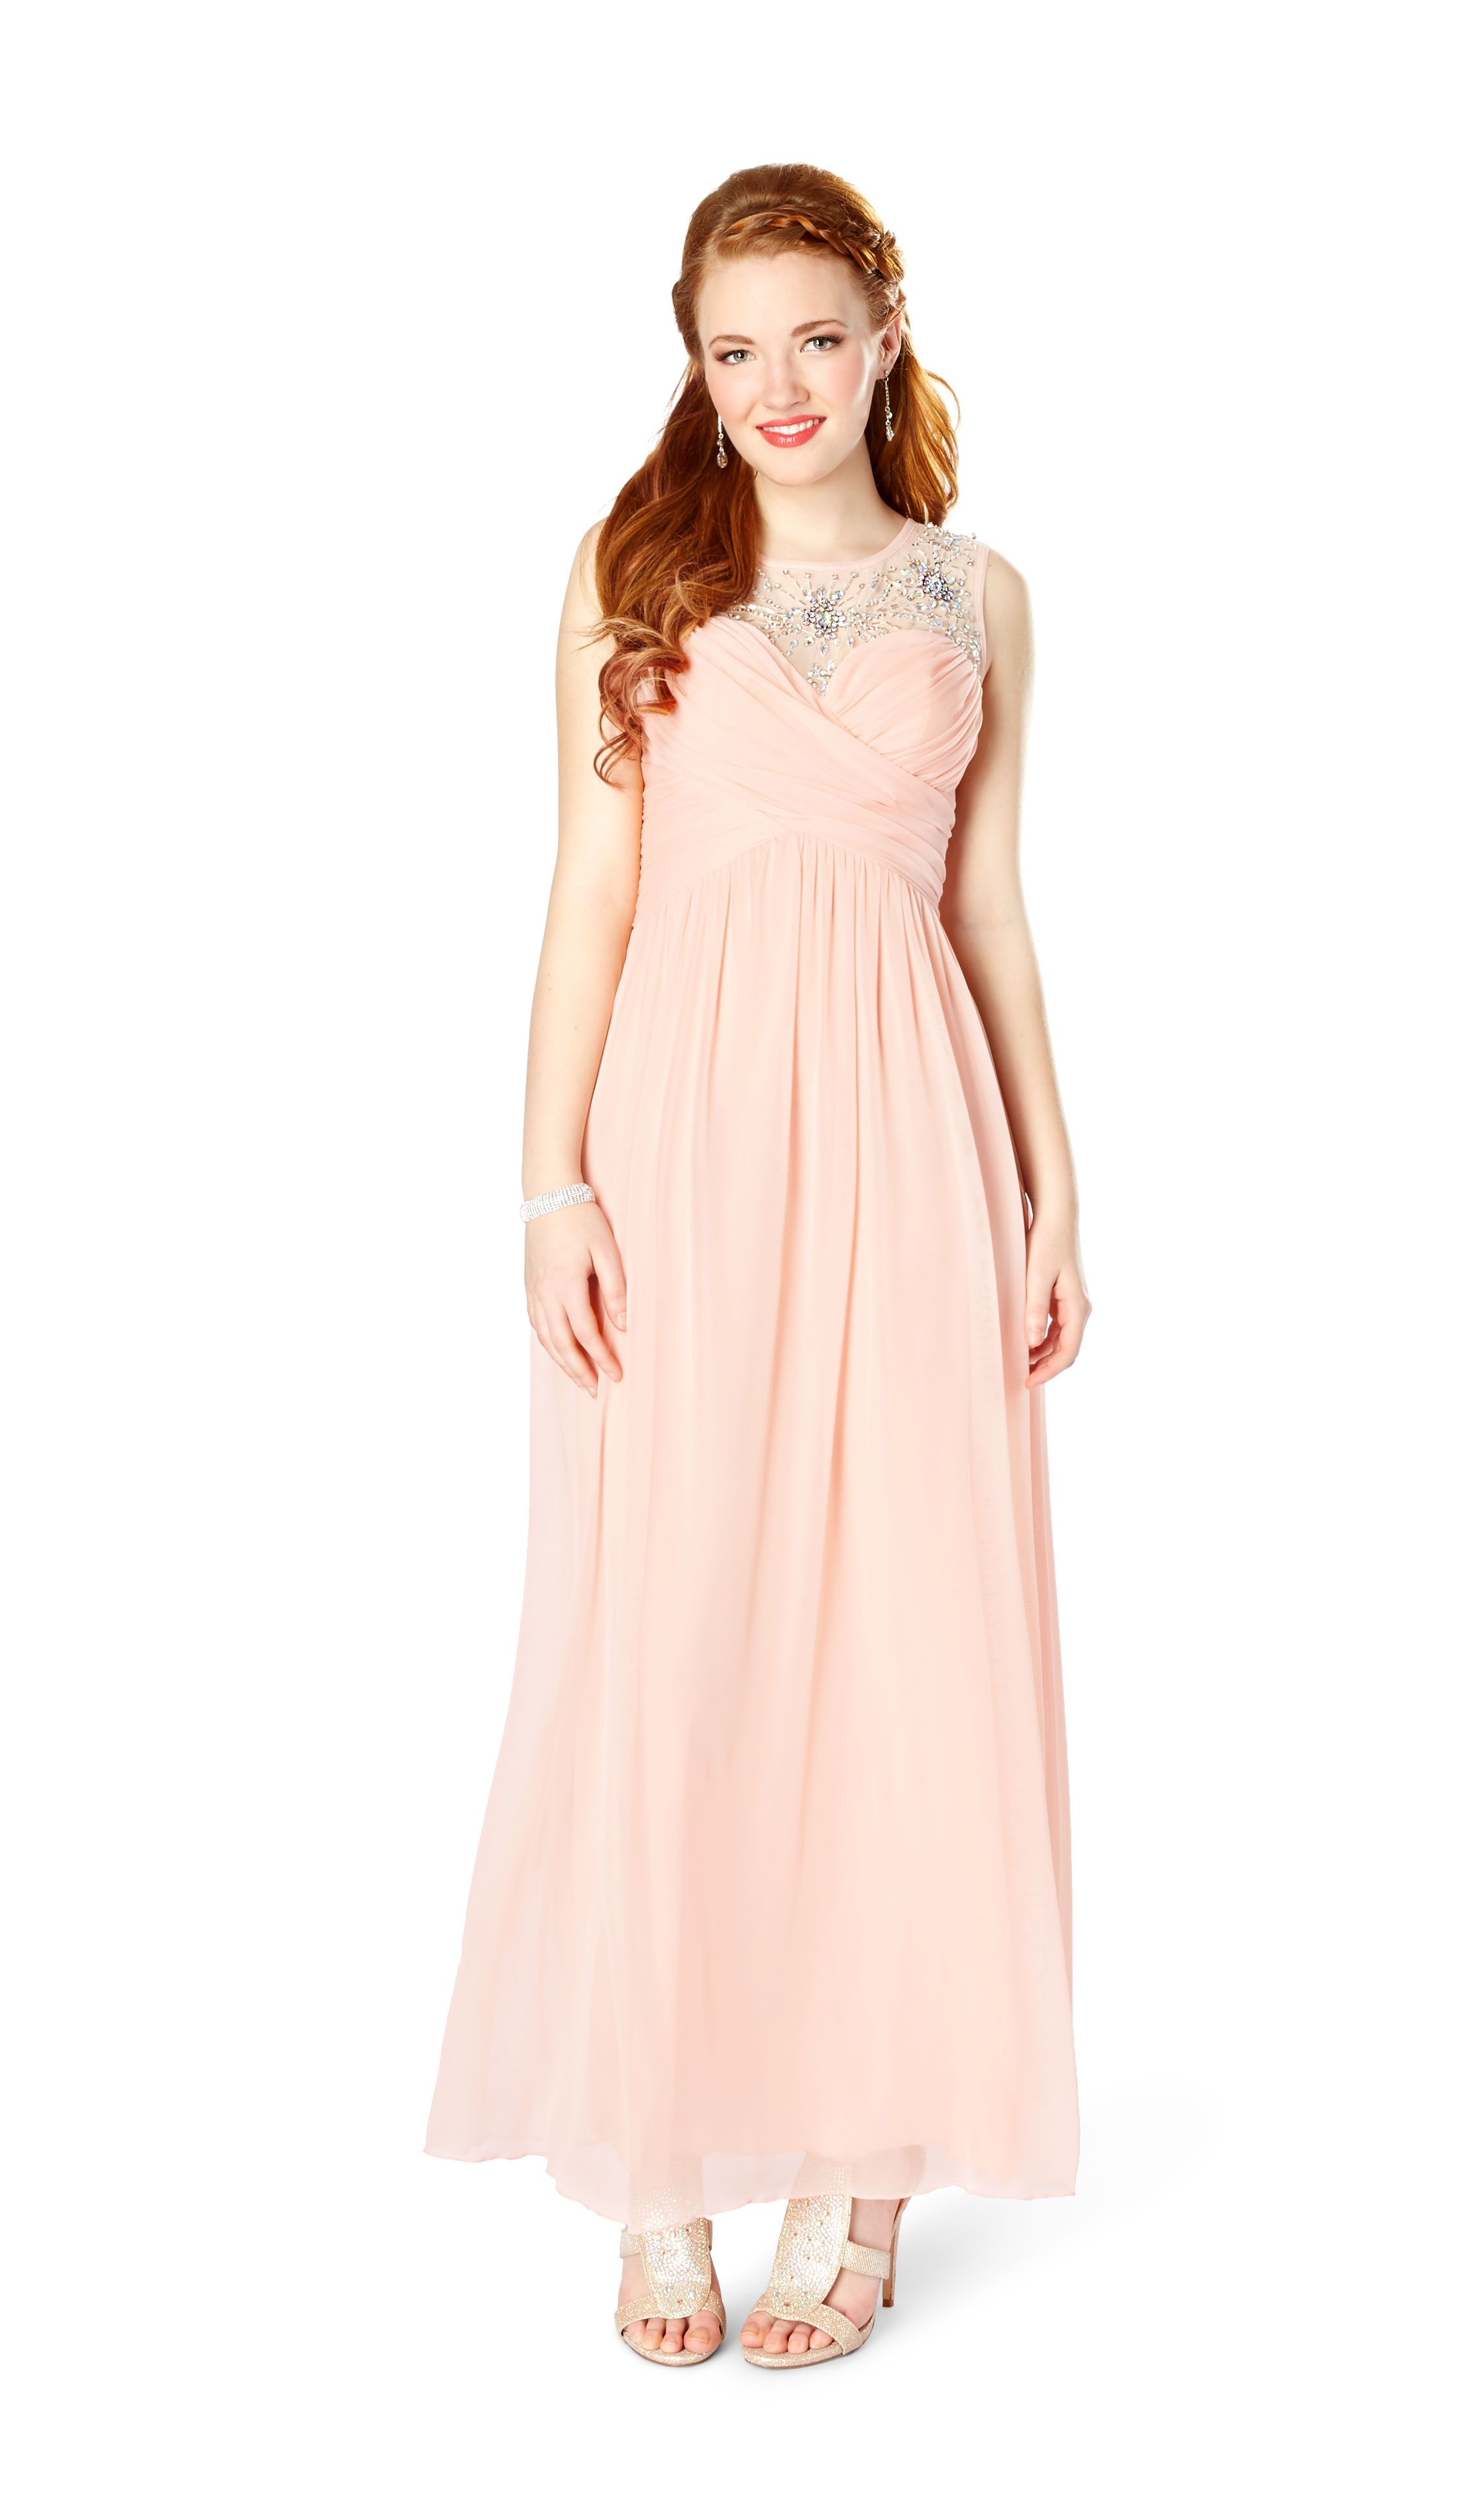 Modern Rue 21 Prom Dresses Images - Colorful Wedding Dress Ideas ...